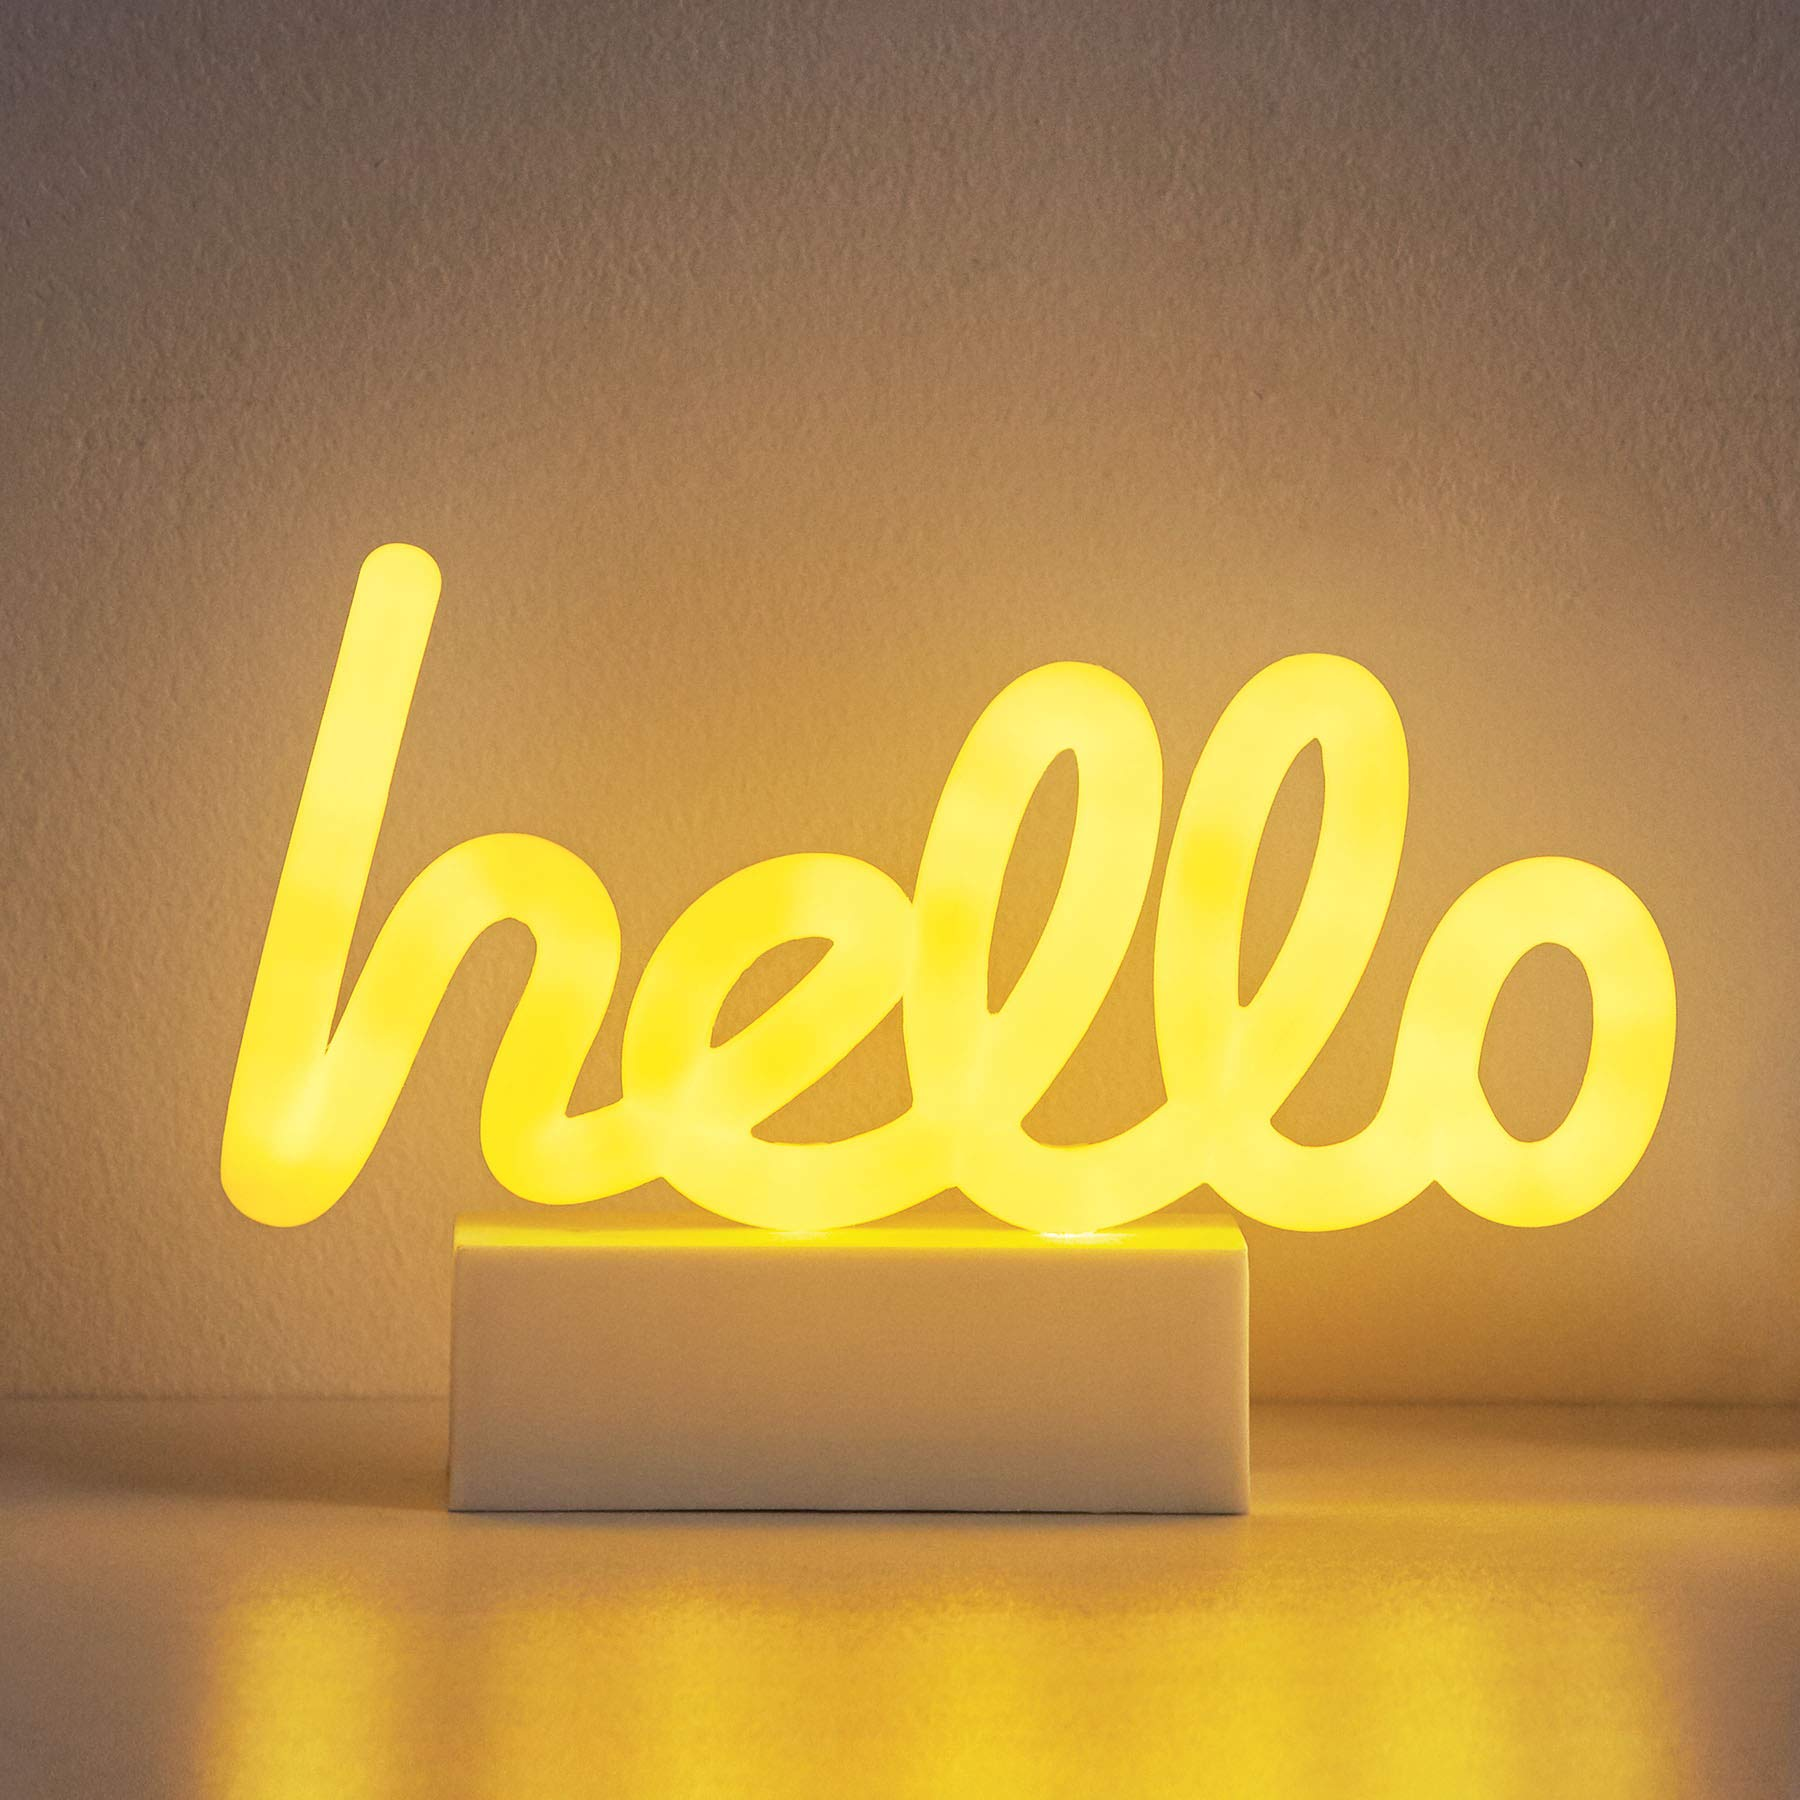 Merkury Innovations 8'' inch LED Neon Yellow''Hello'' Sign, Night Light, Mood Light with Pedestal,Battery Operated Wall Art,Bedroom Decorations,Lamp,Home Accessories,Party and Holiday Decor:Neon Yellow